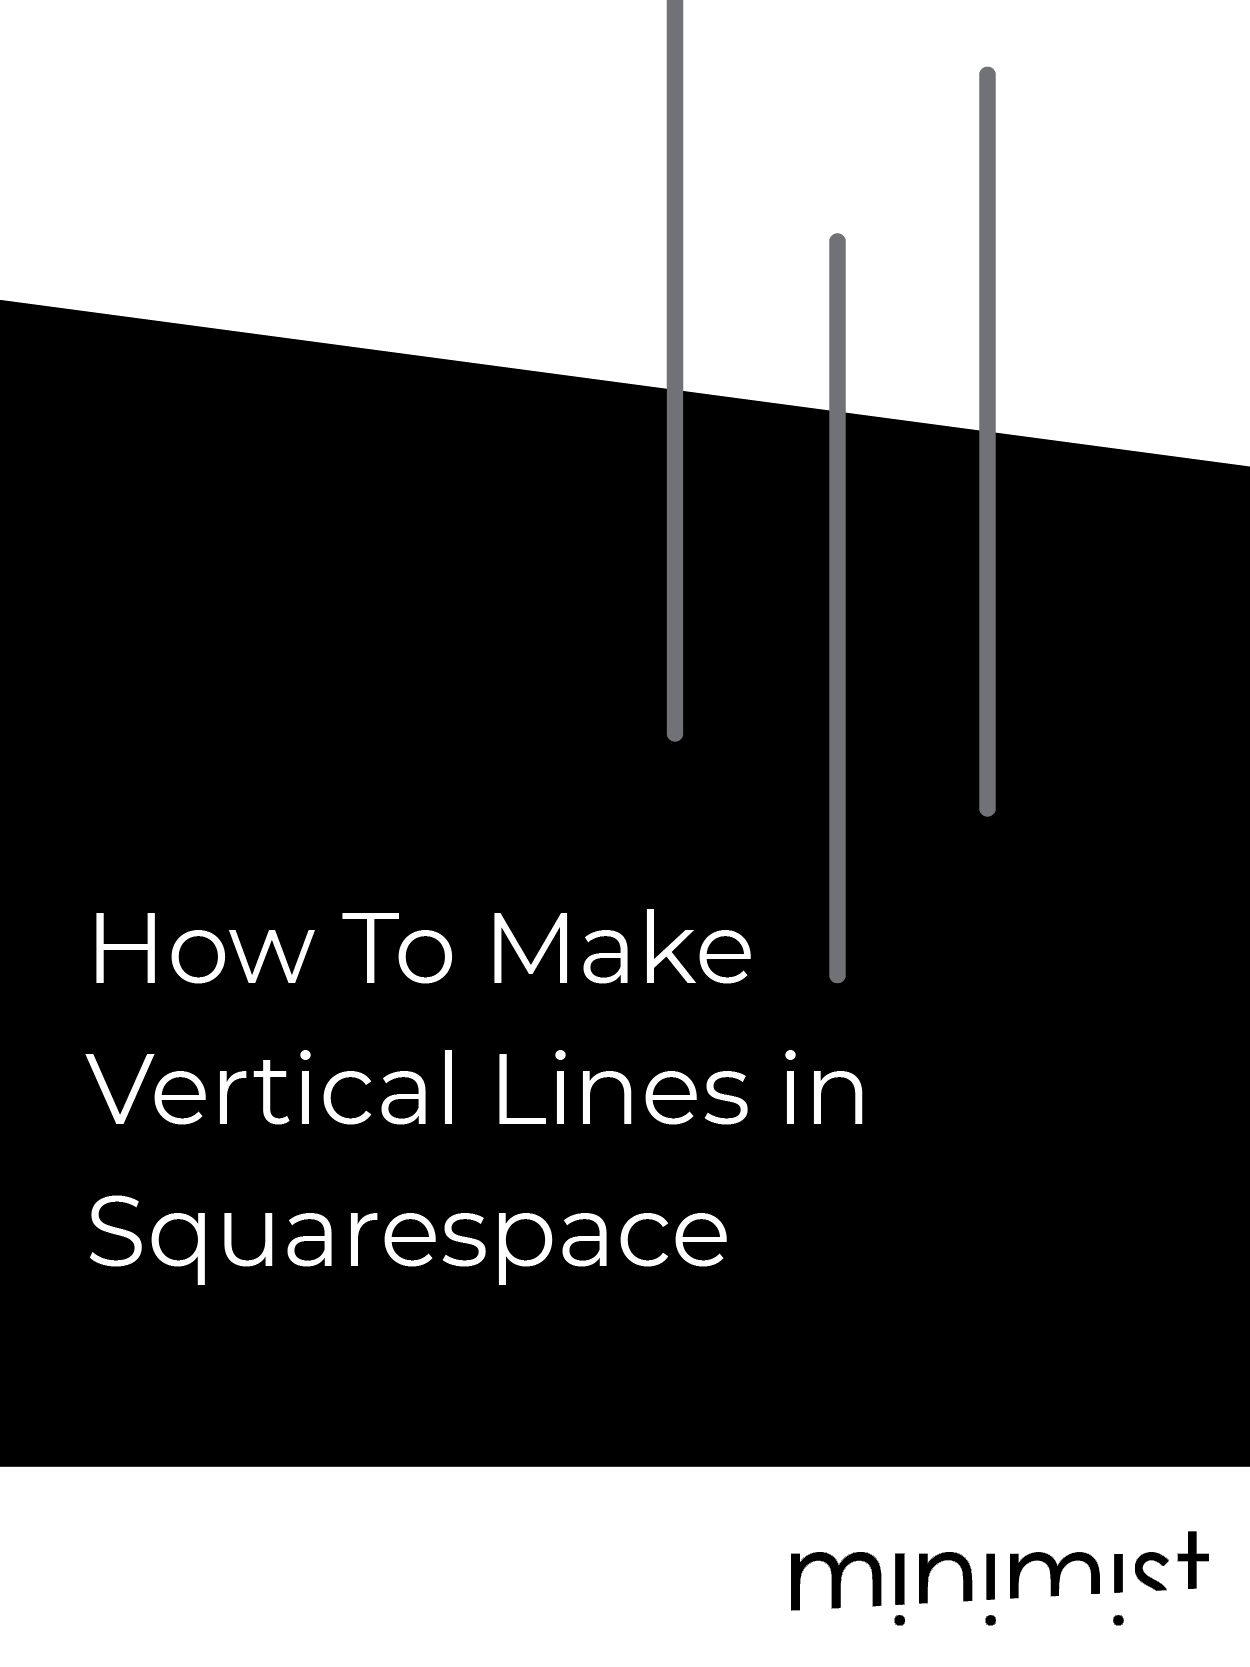 How To Make Vertical Lines in Squarespace